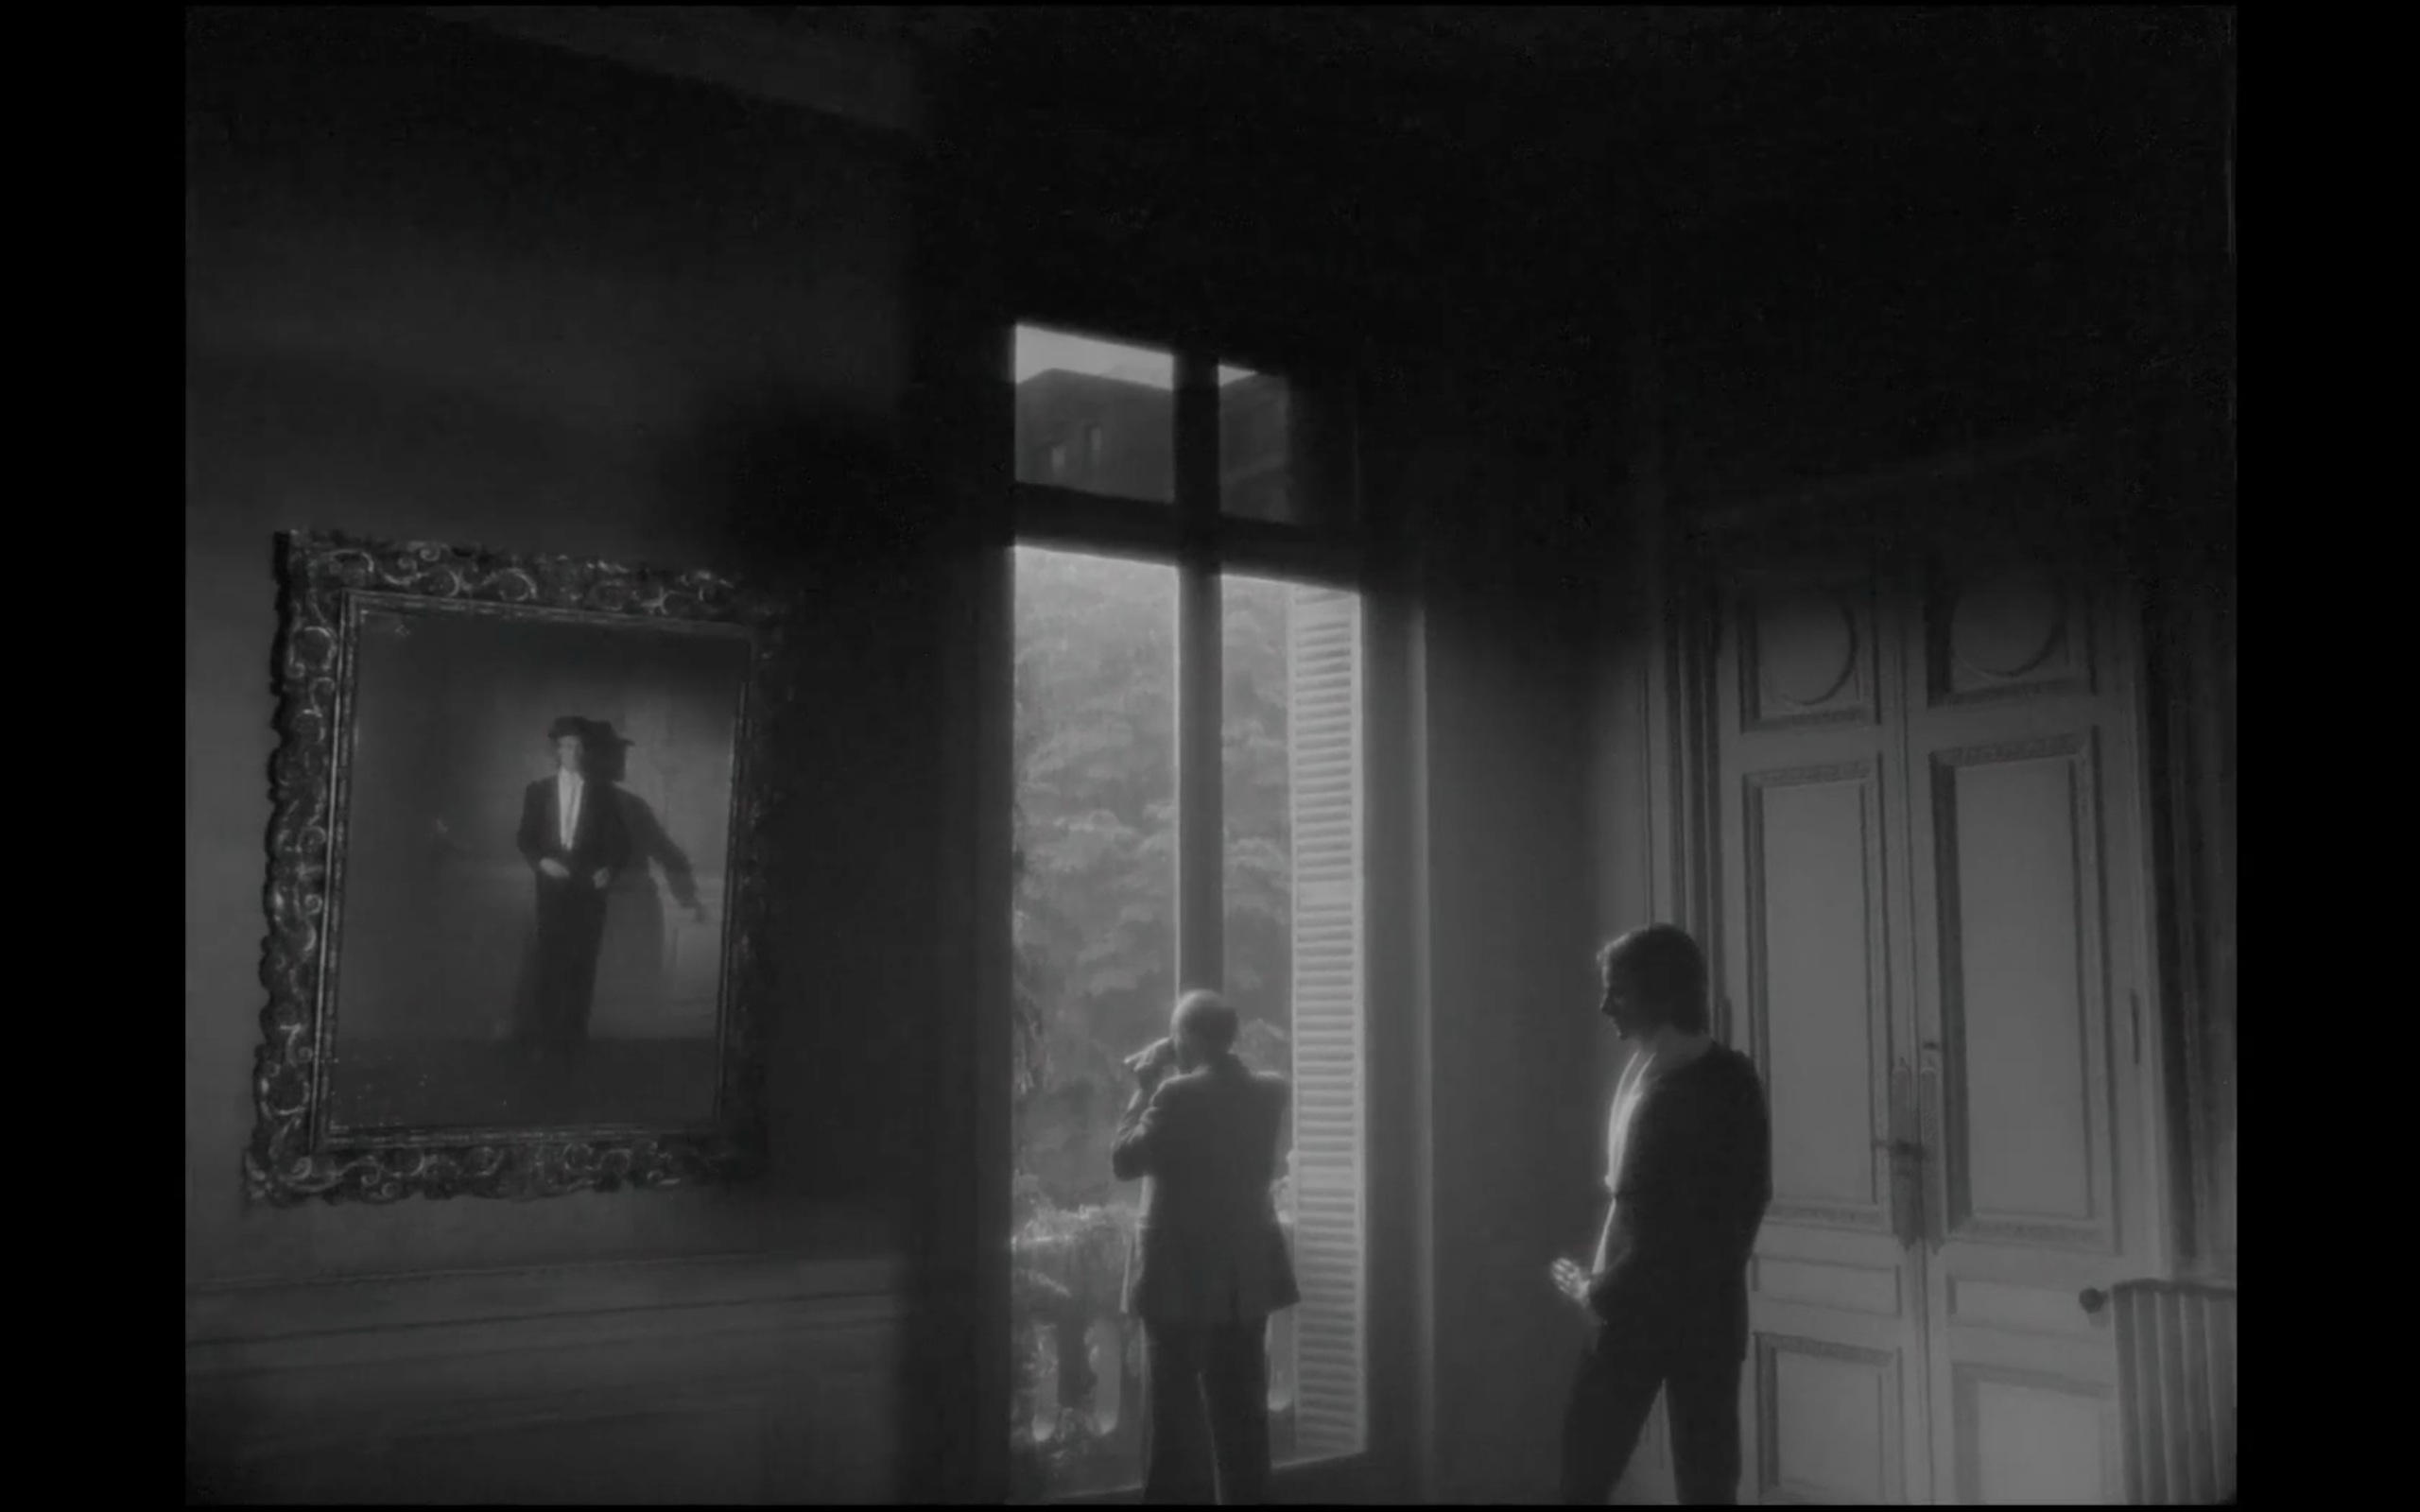 Film still from The Hypothesis of the Stolen Painting (1978) by Raúl Ruiz